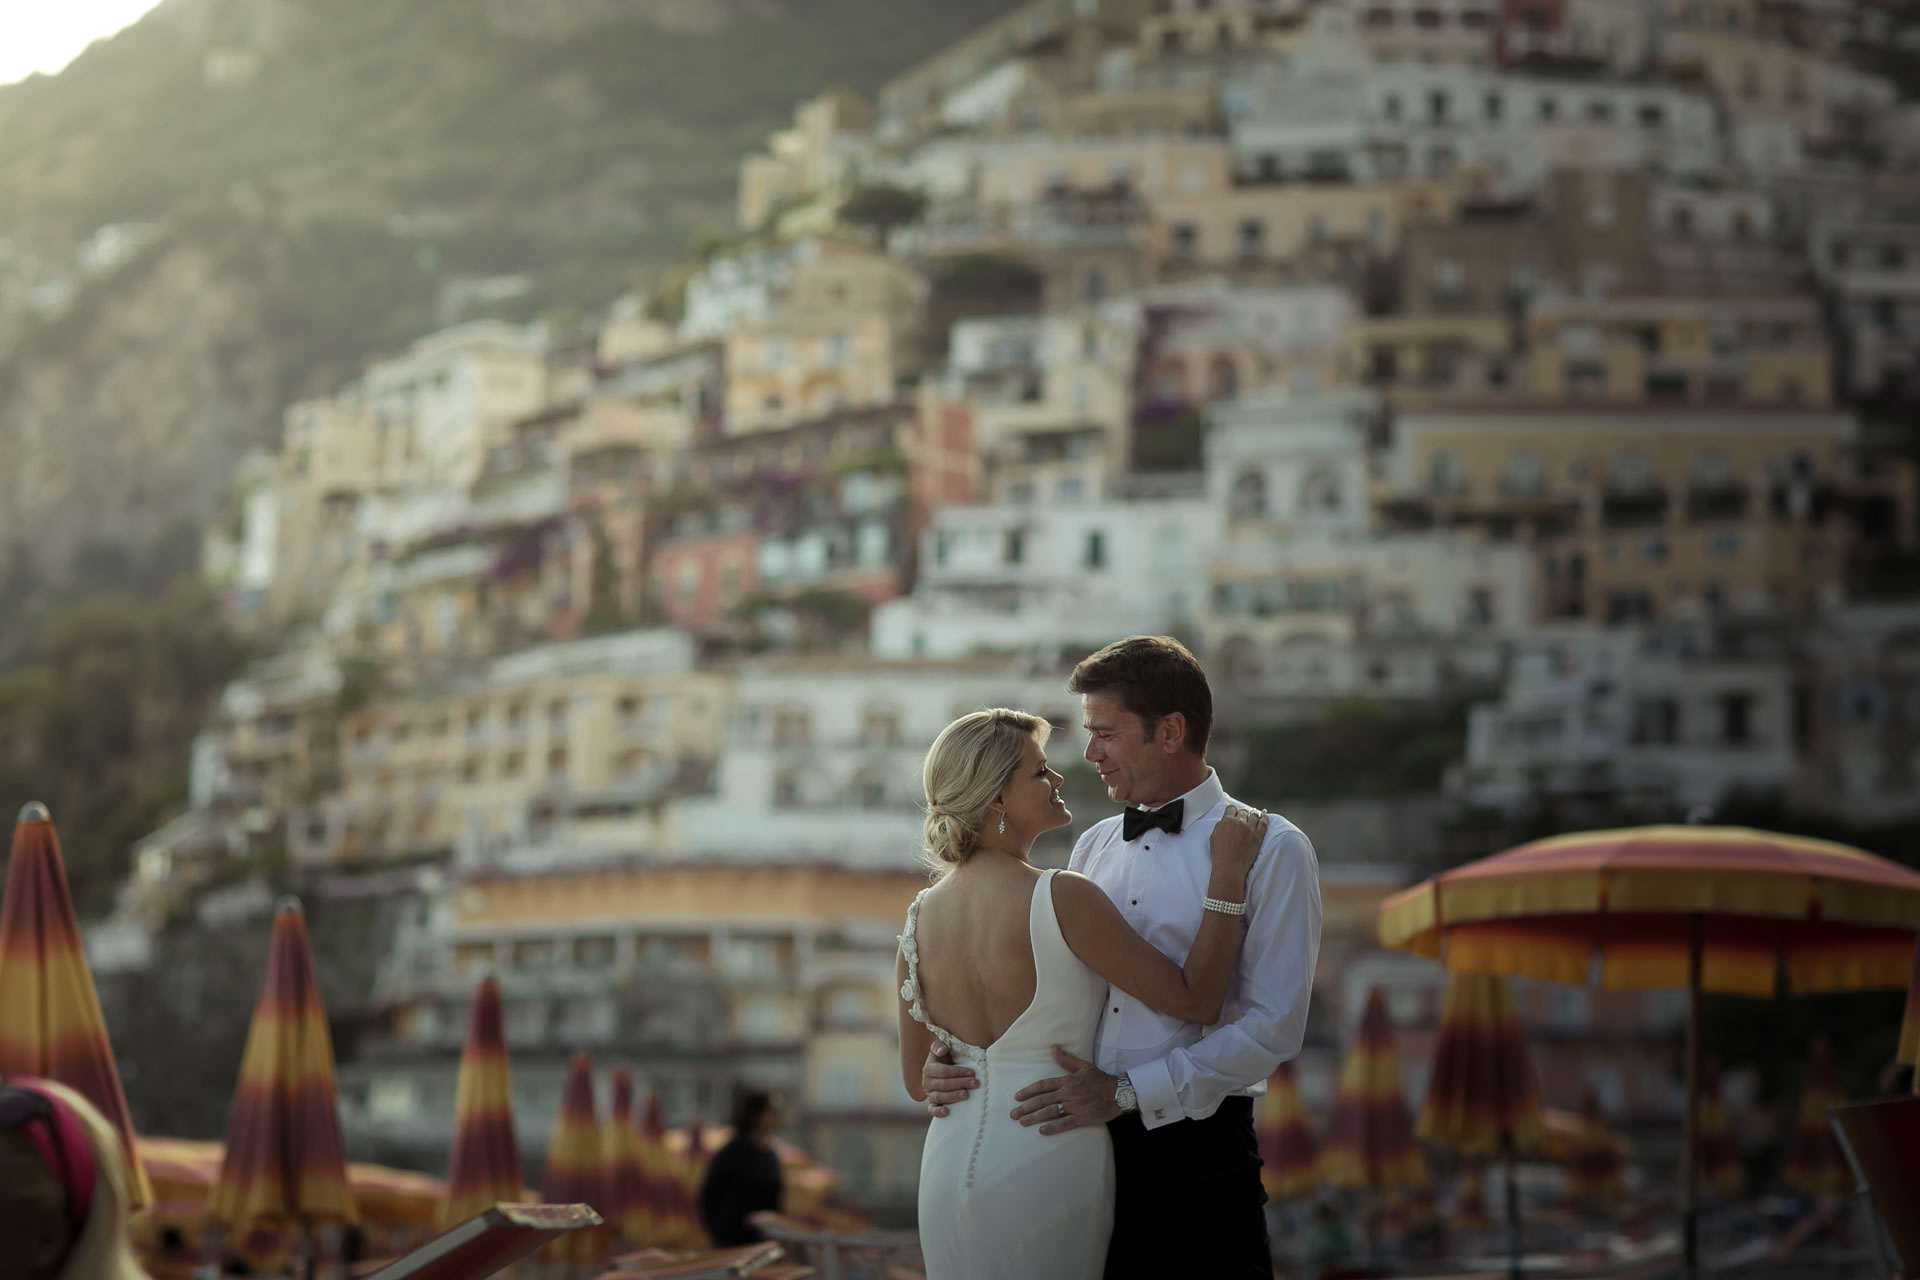 Beach - 47 :: Wedding in Positano. Sea and love :: Luxury wedding photography - 46 :: Beach - 47